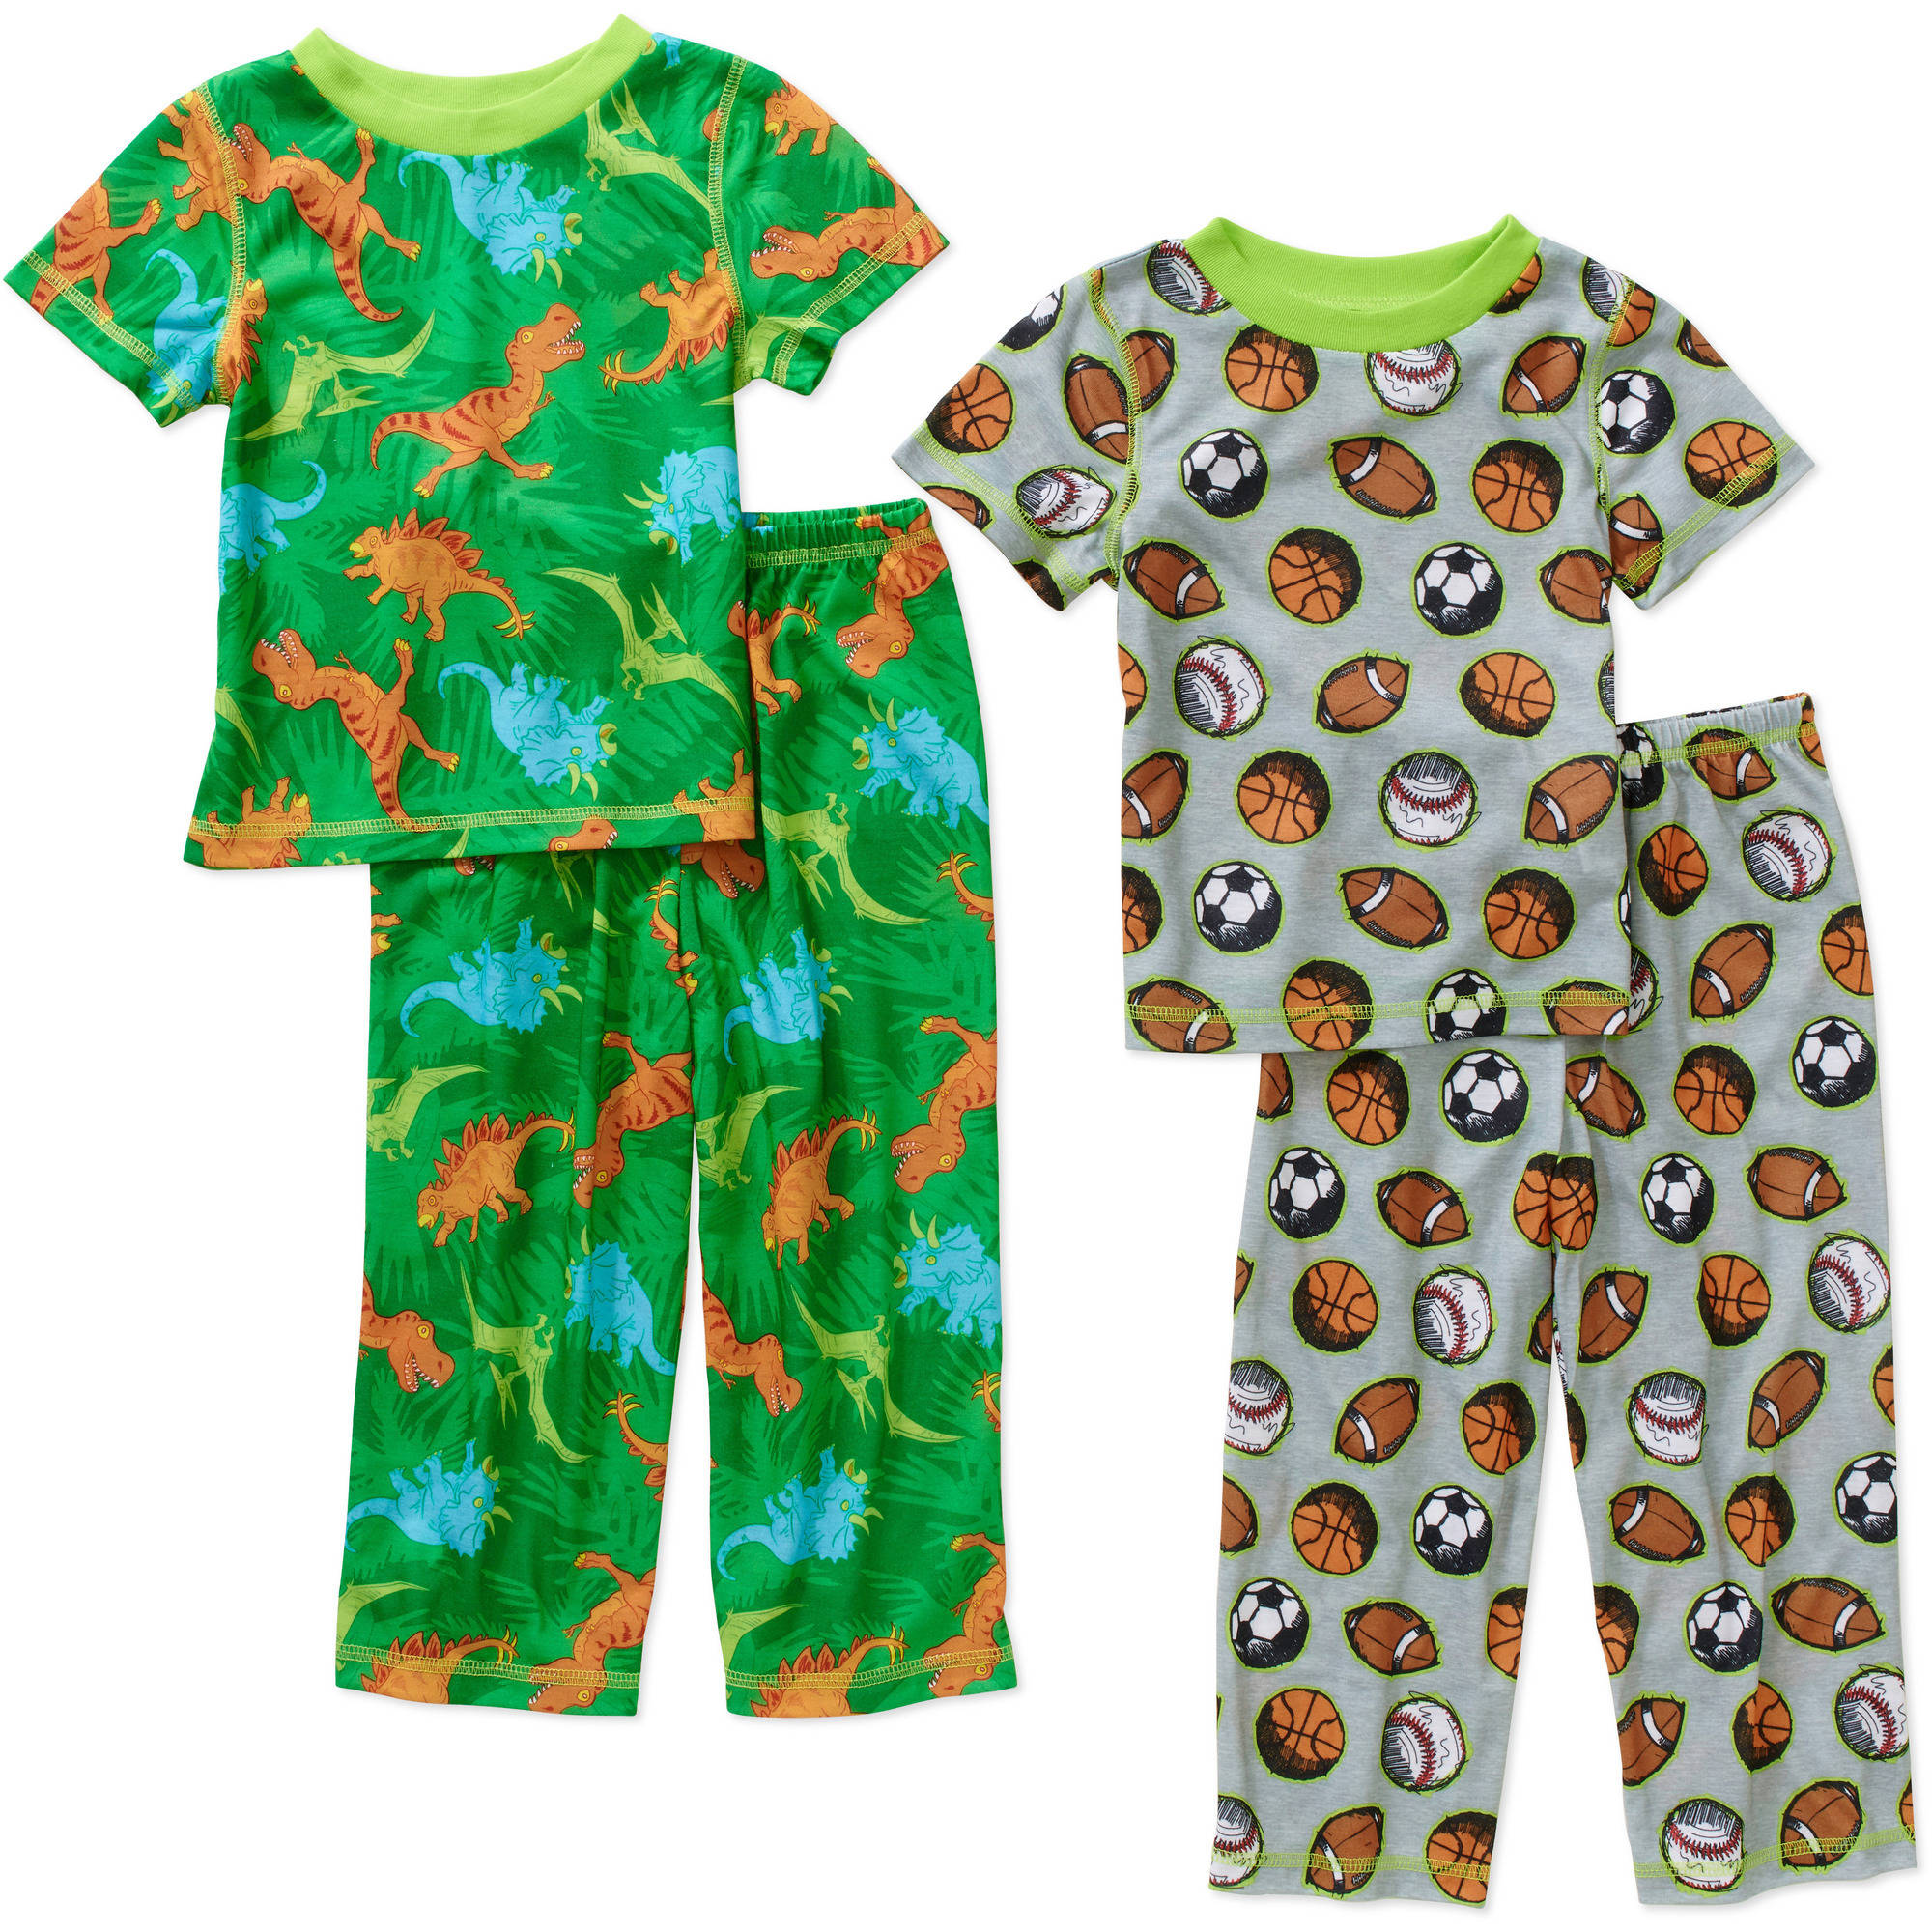 Baby Toddler Boy Graphic Jersey Pajamas, 4-Piece Value Pack